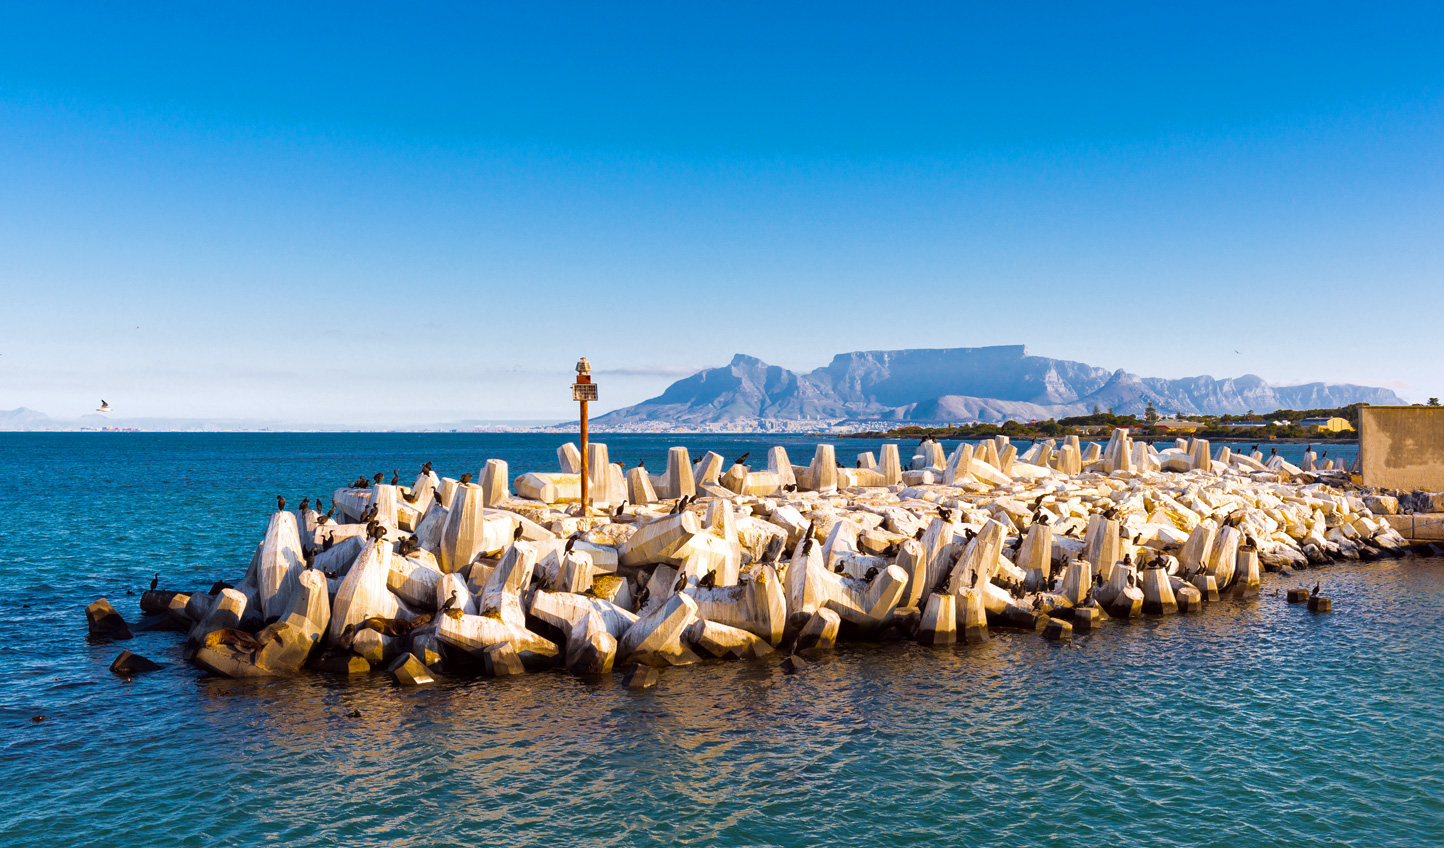 Visit Robben Island and see the place where Nelson Mandela was held prisoner